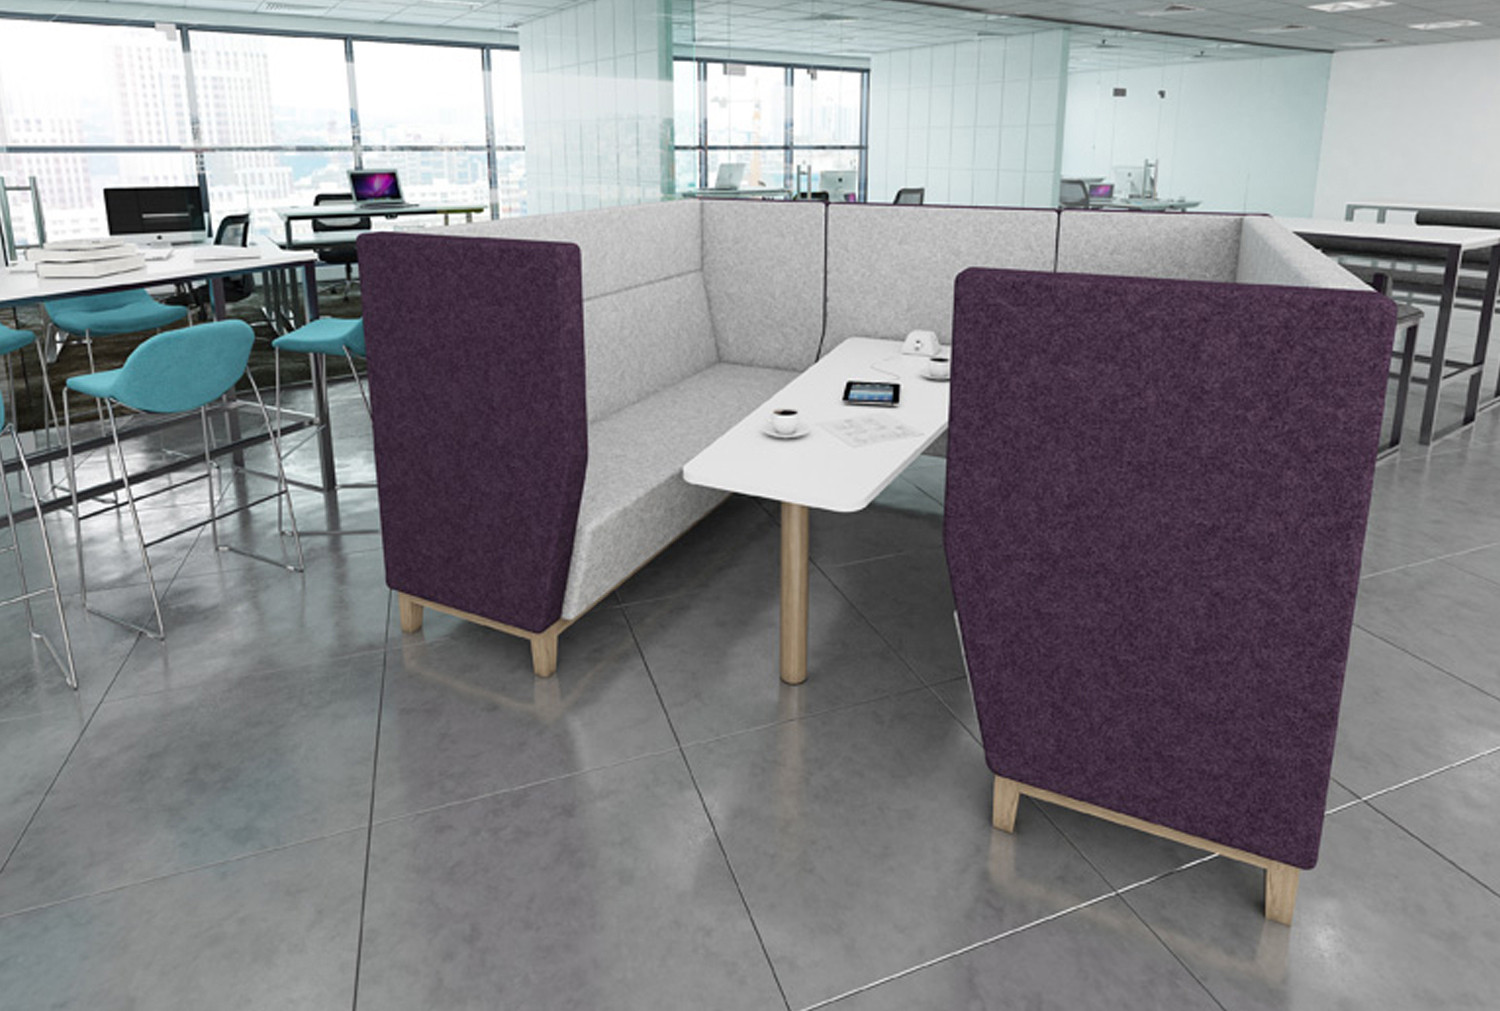 Niche Narrow 6 Seater Meeting Pod With Wooden Legs